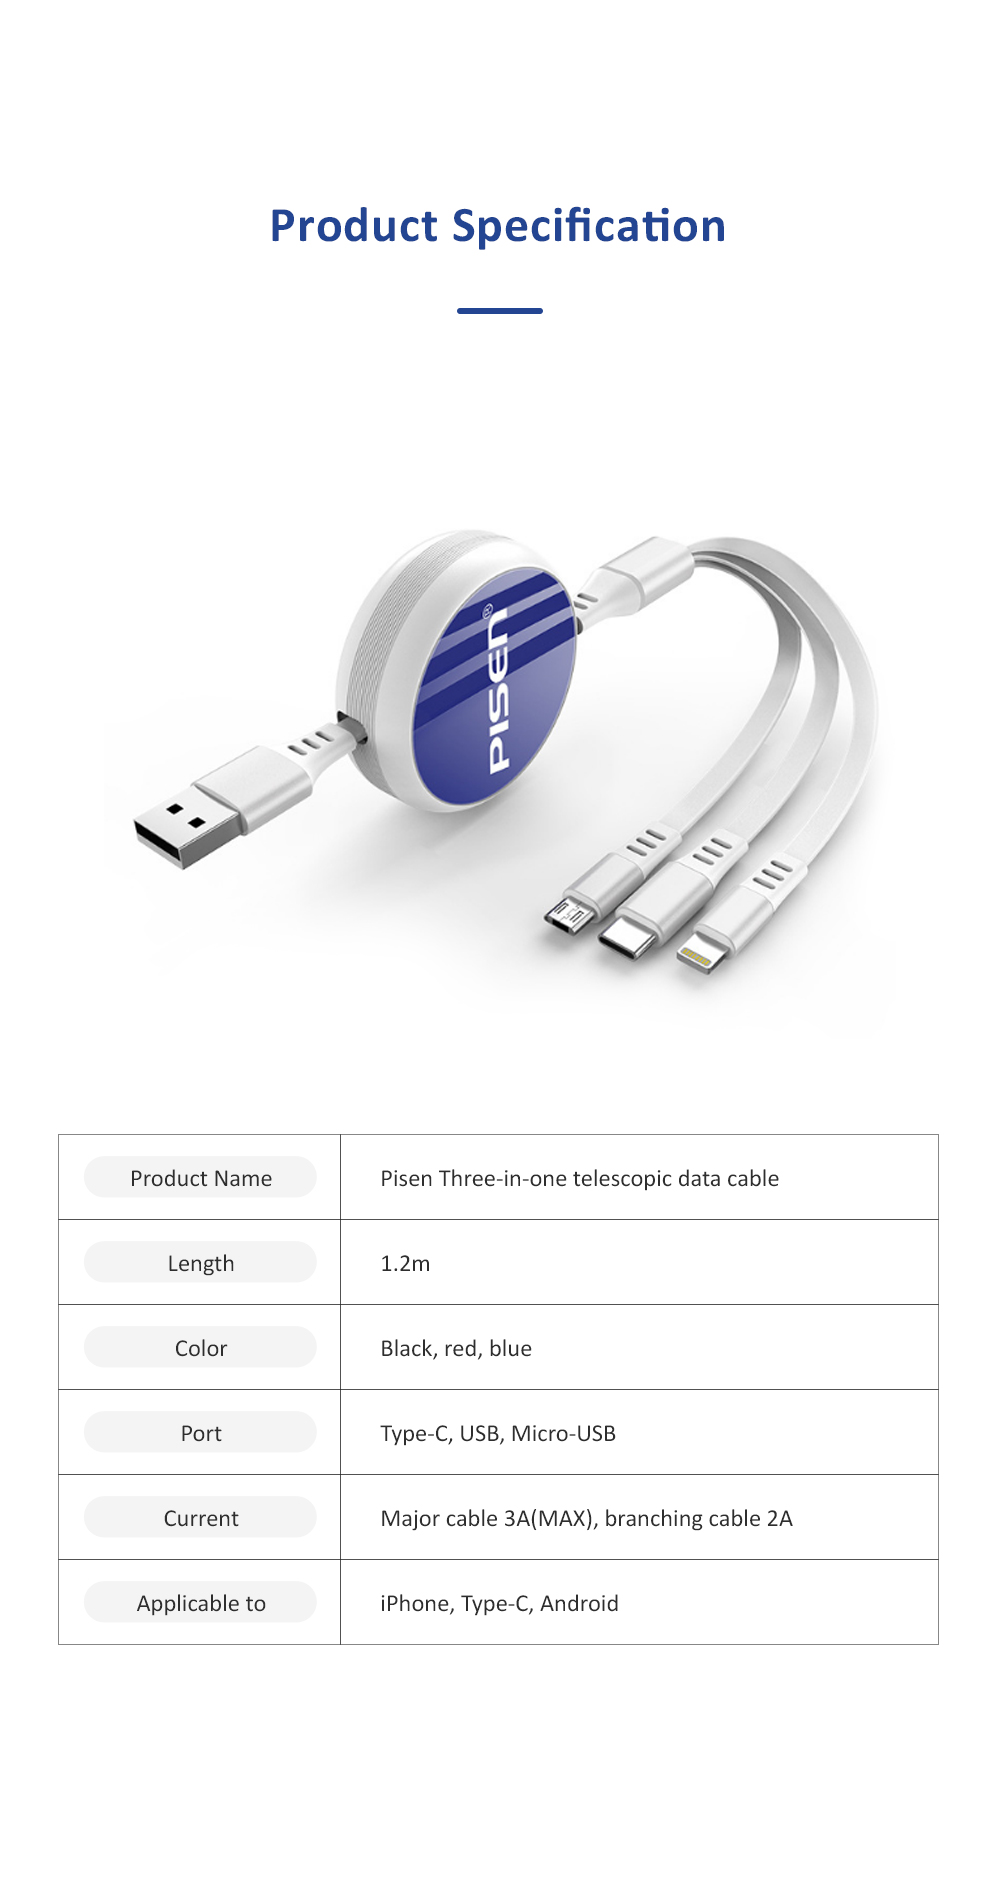 PISEN Three-in-one Telescopic Data Cable Quick Charge Type-c Data Line Compatible with Android, iPhone Multifunctional Power Line 6